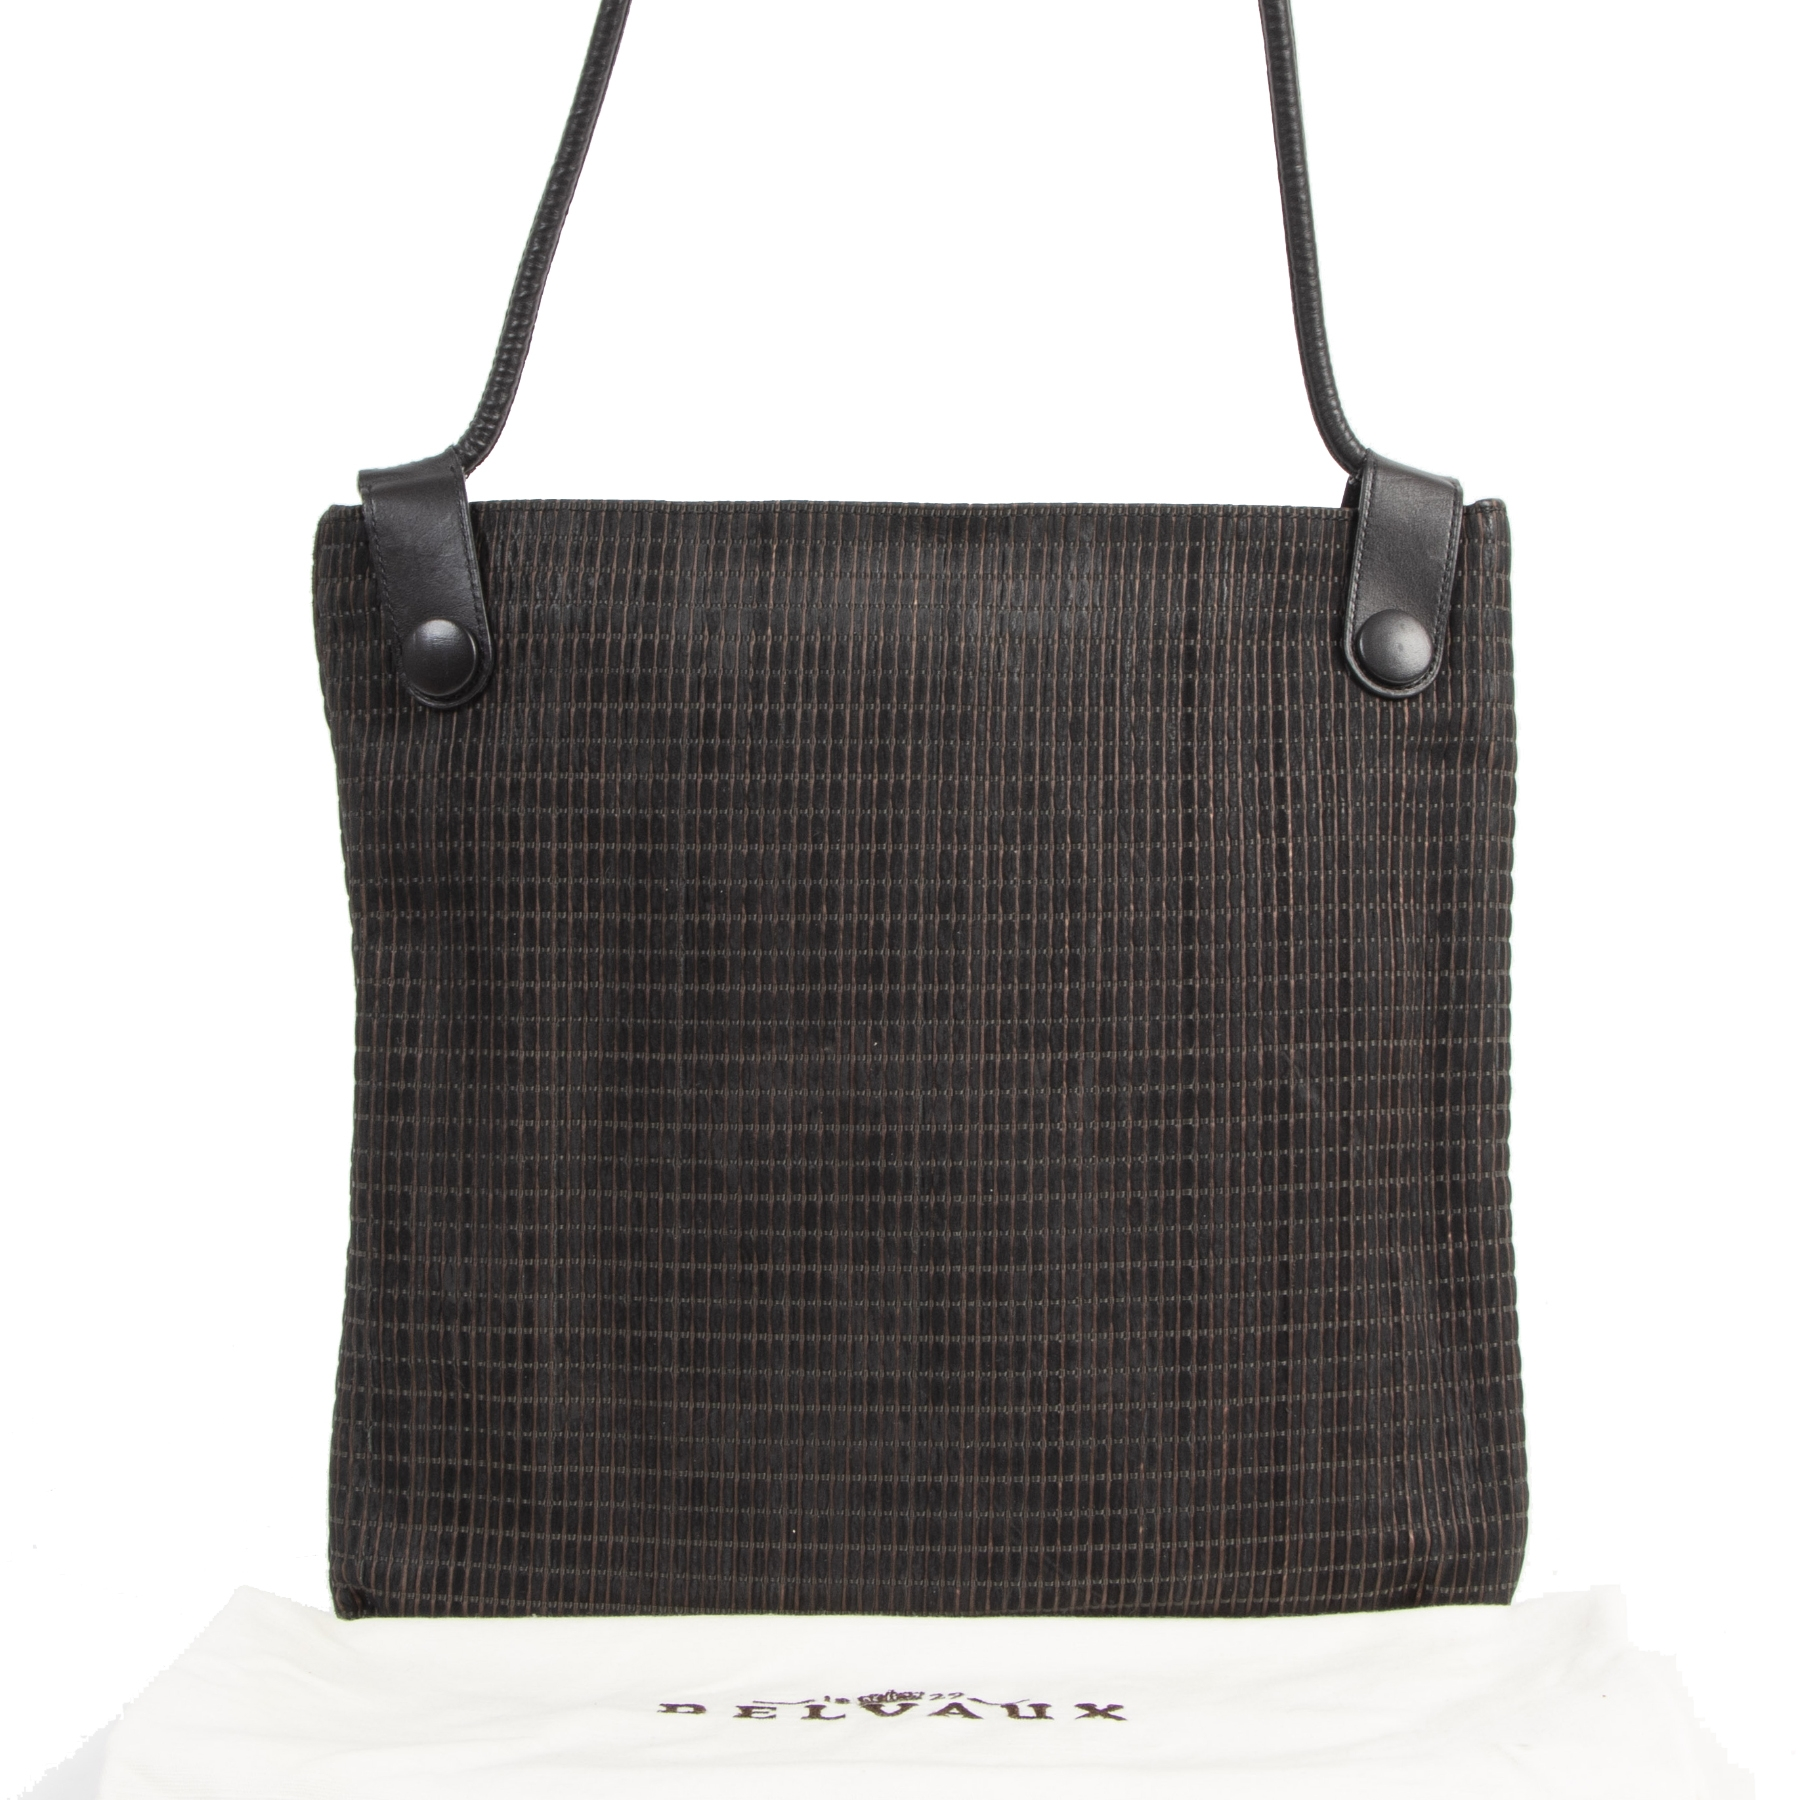 Authentic second-hand vintage Delvaux Dark Brown Woven Leather  buy online webshop LabelLOV